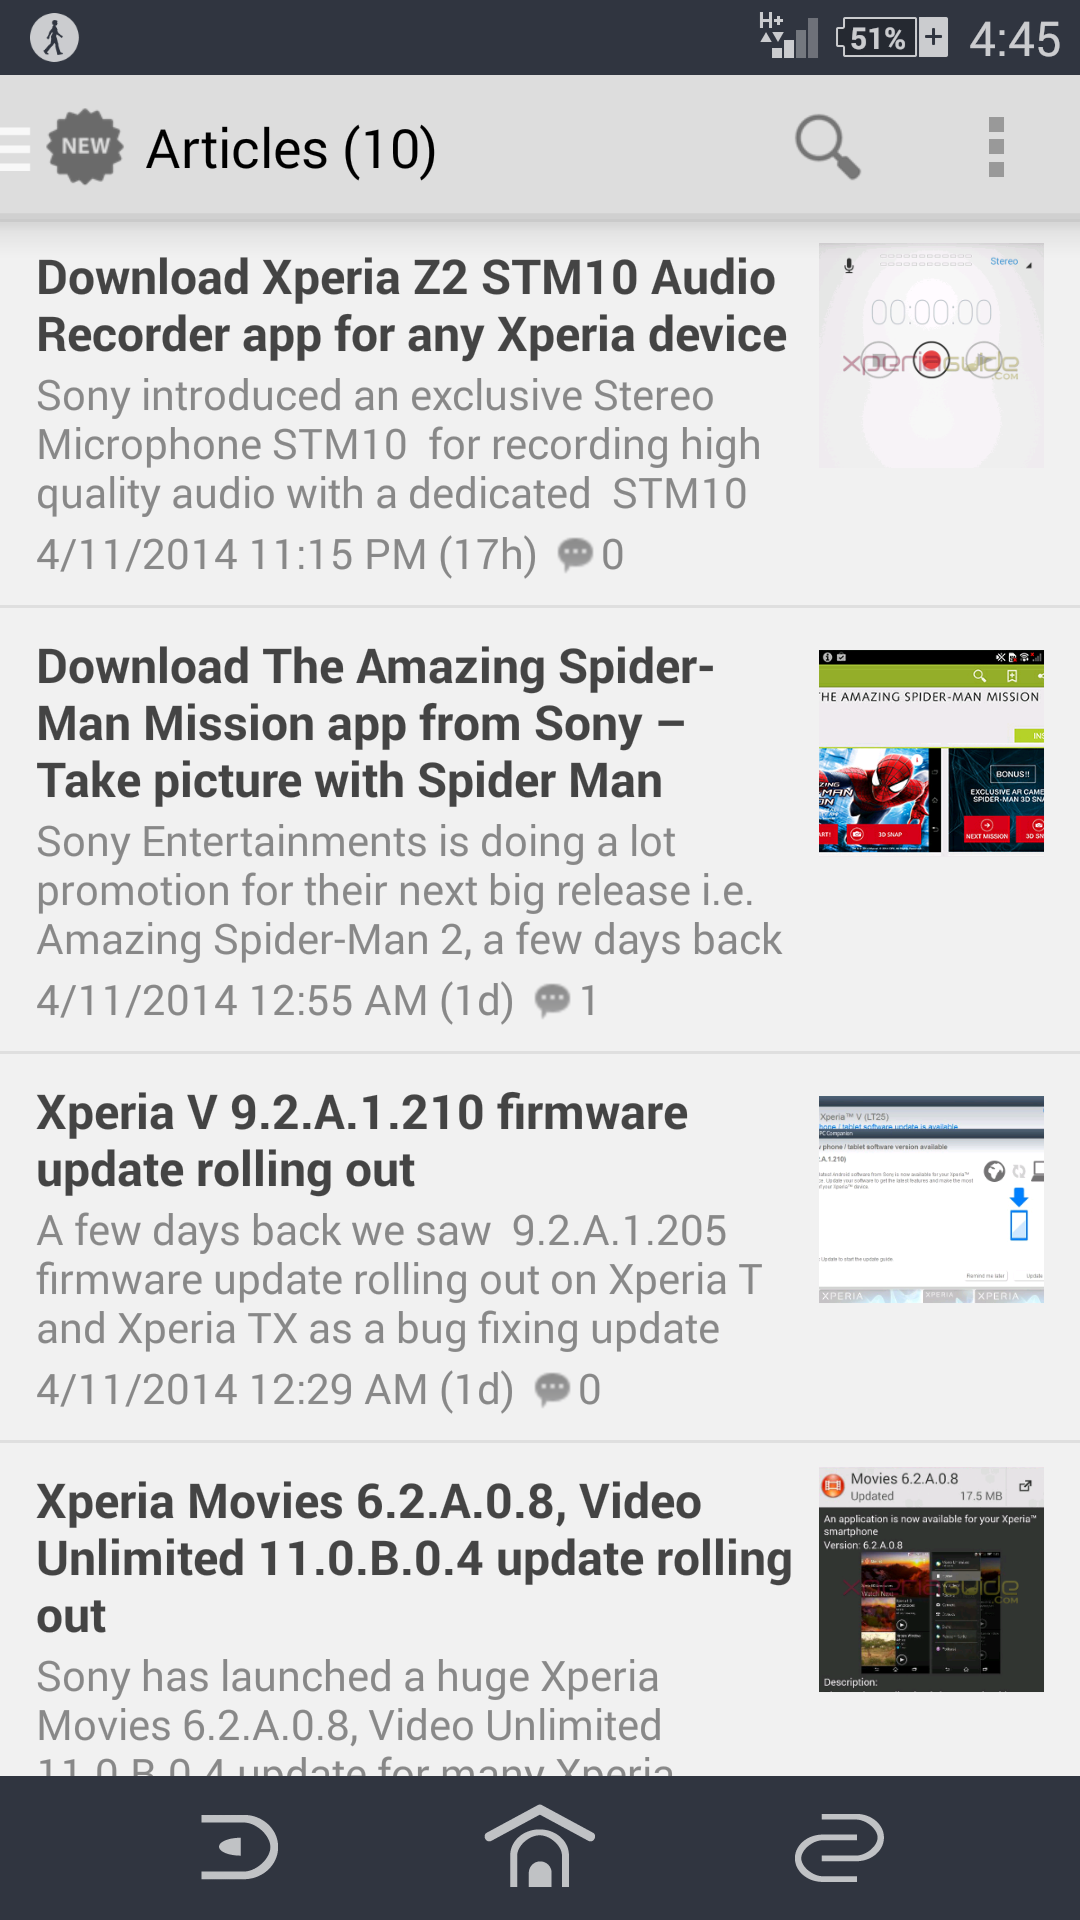 Xperia Guide version 1.0 APP